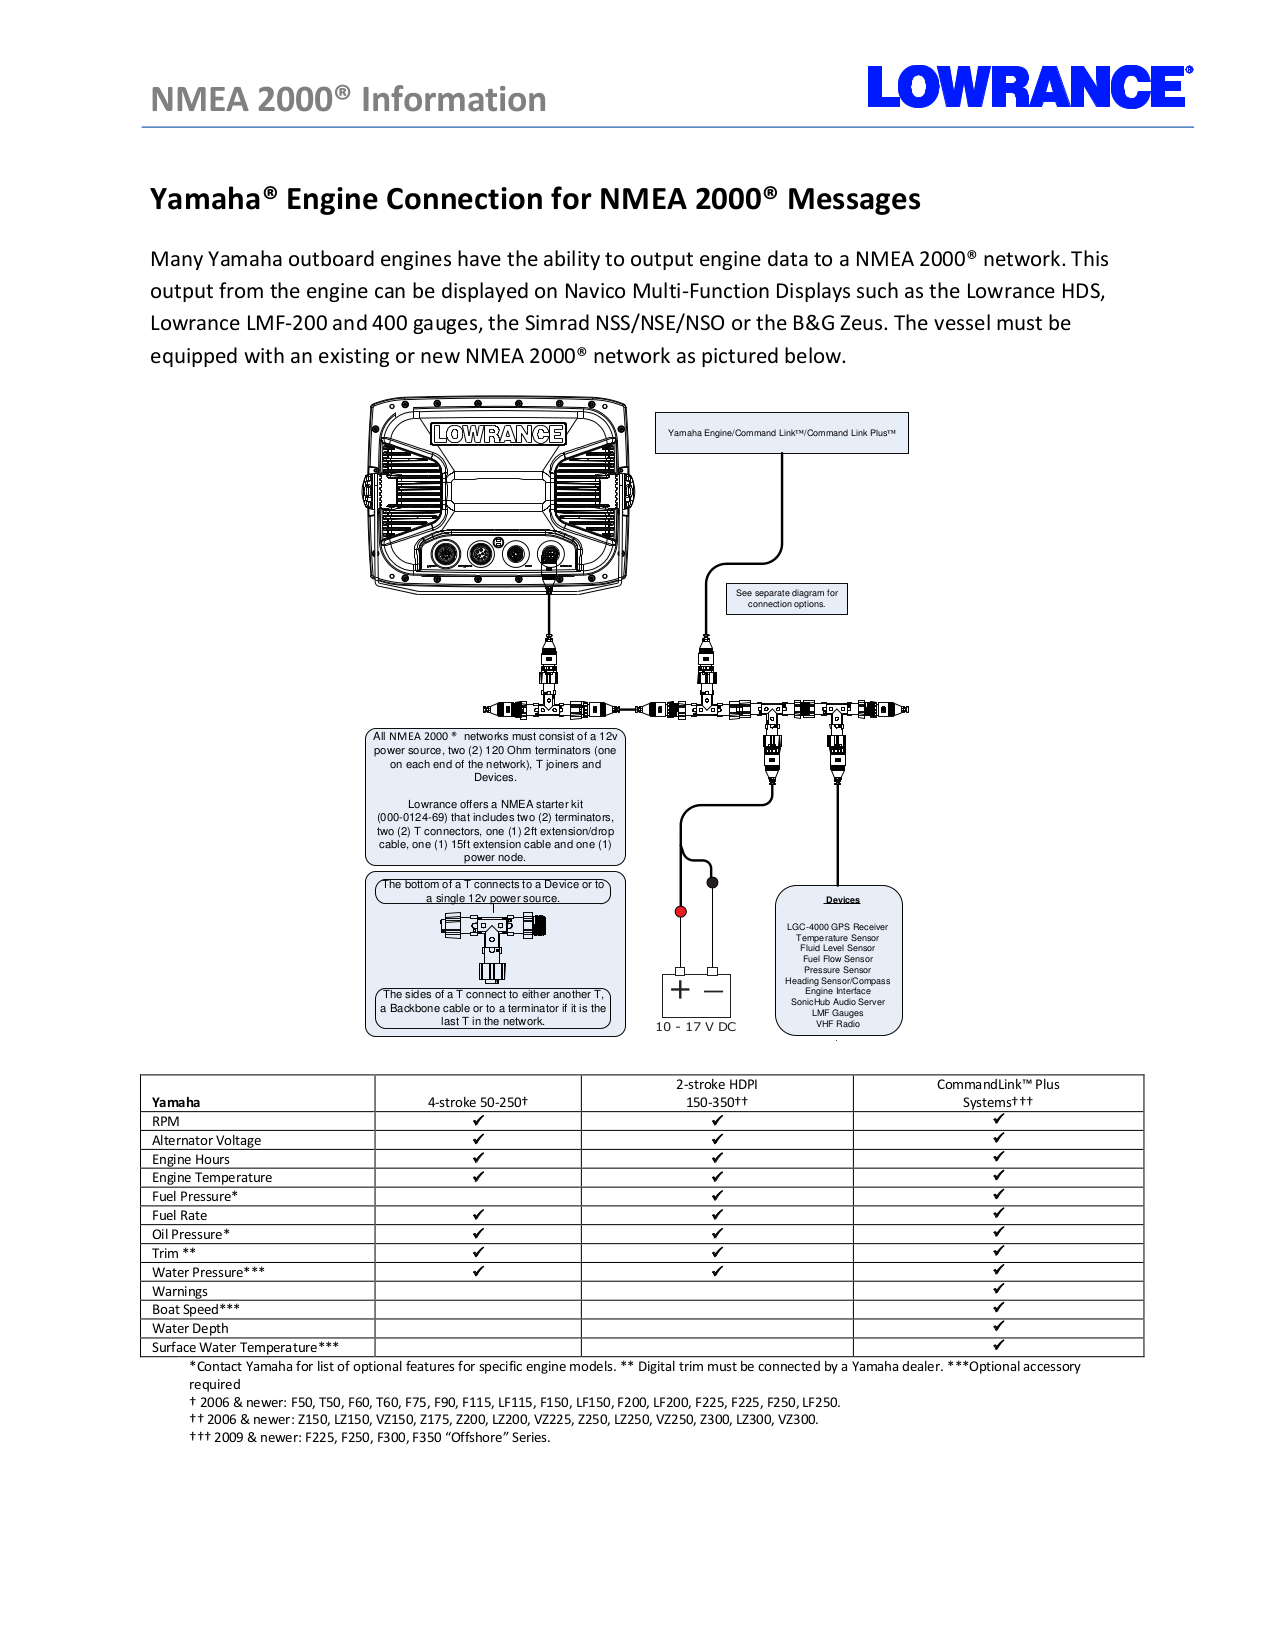 Yamaha Command Link Plus To Nmea 2000 Gateway Manual Network Wiring Diagrams Gemeco